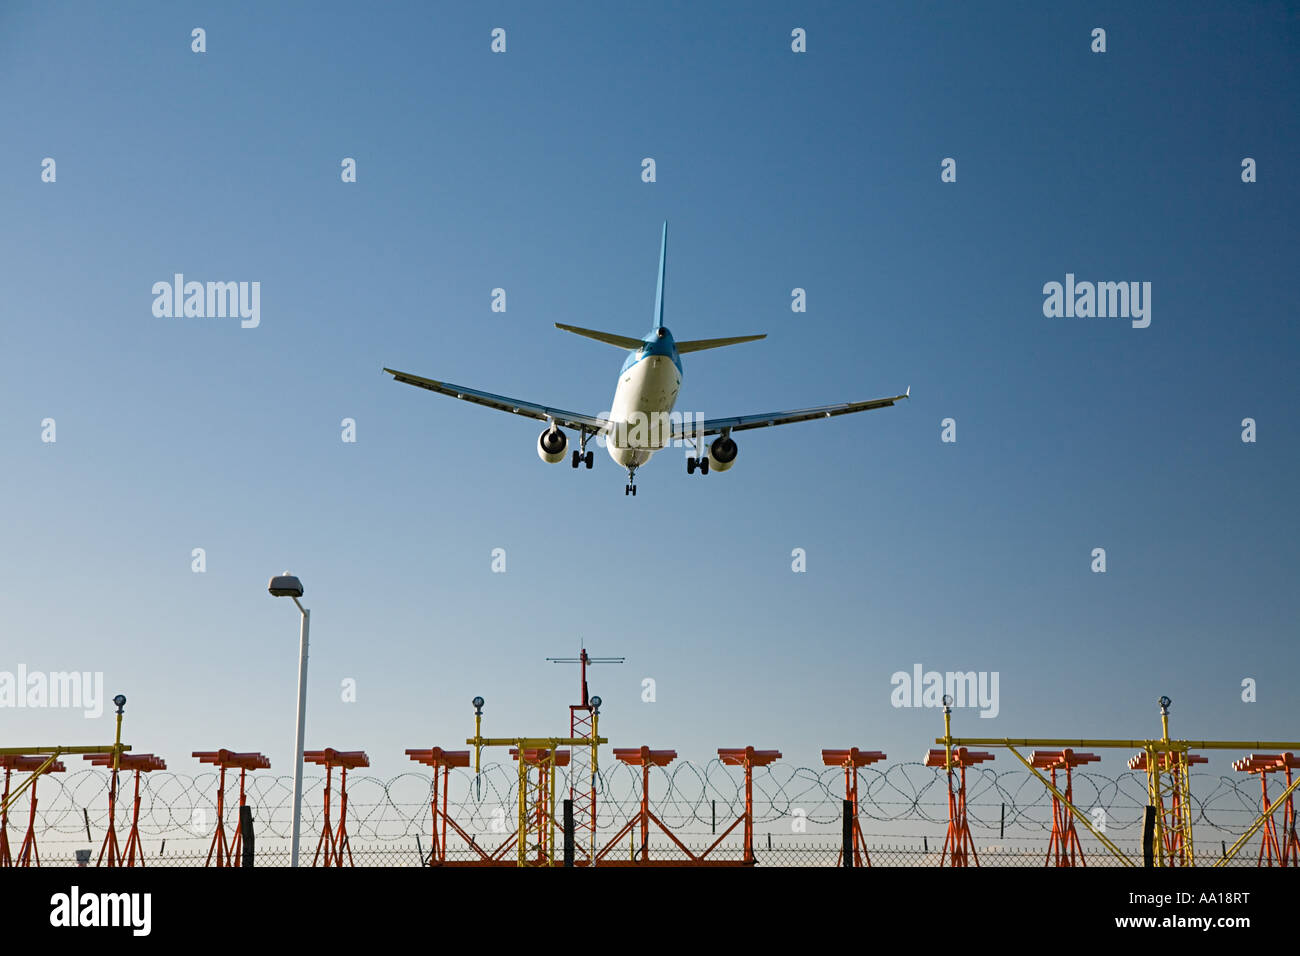 Aeroplane coming in to land - Stock Image